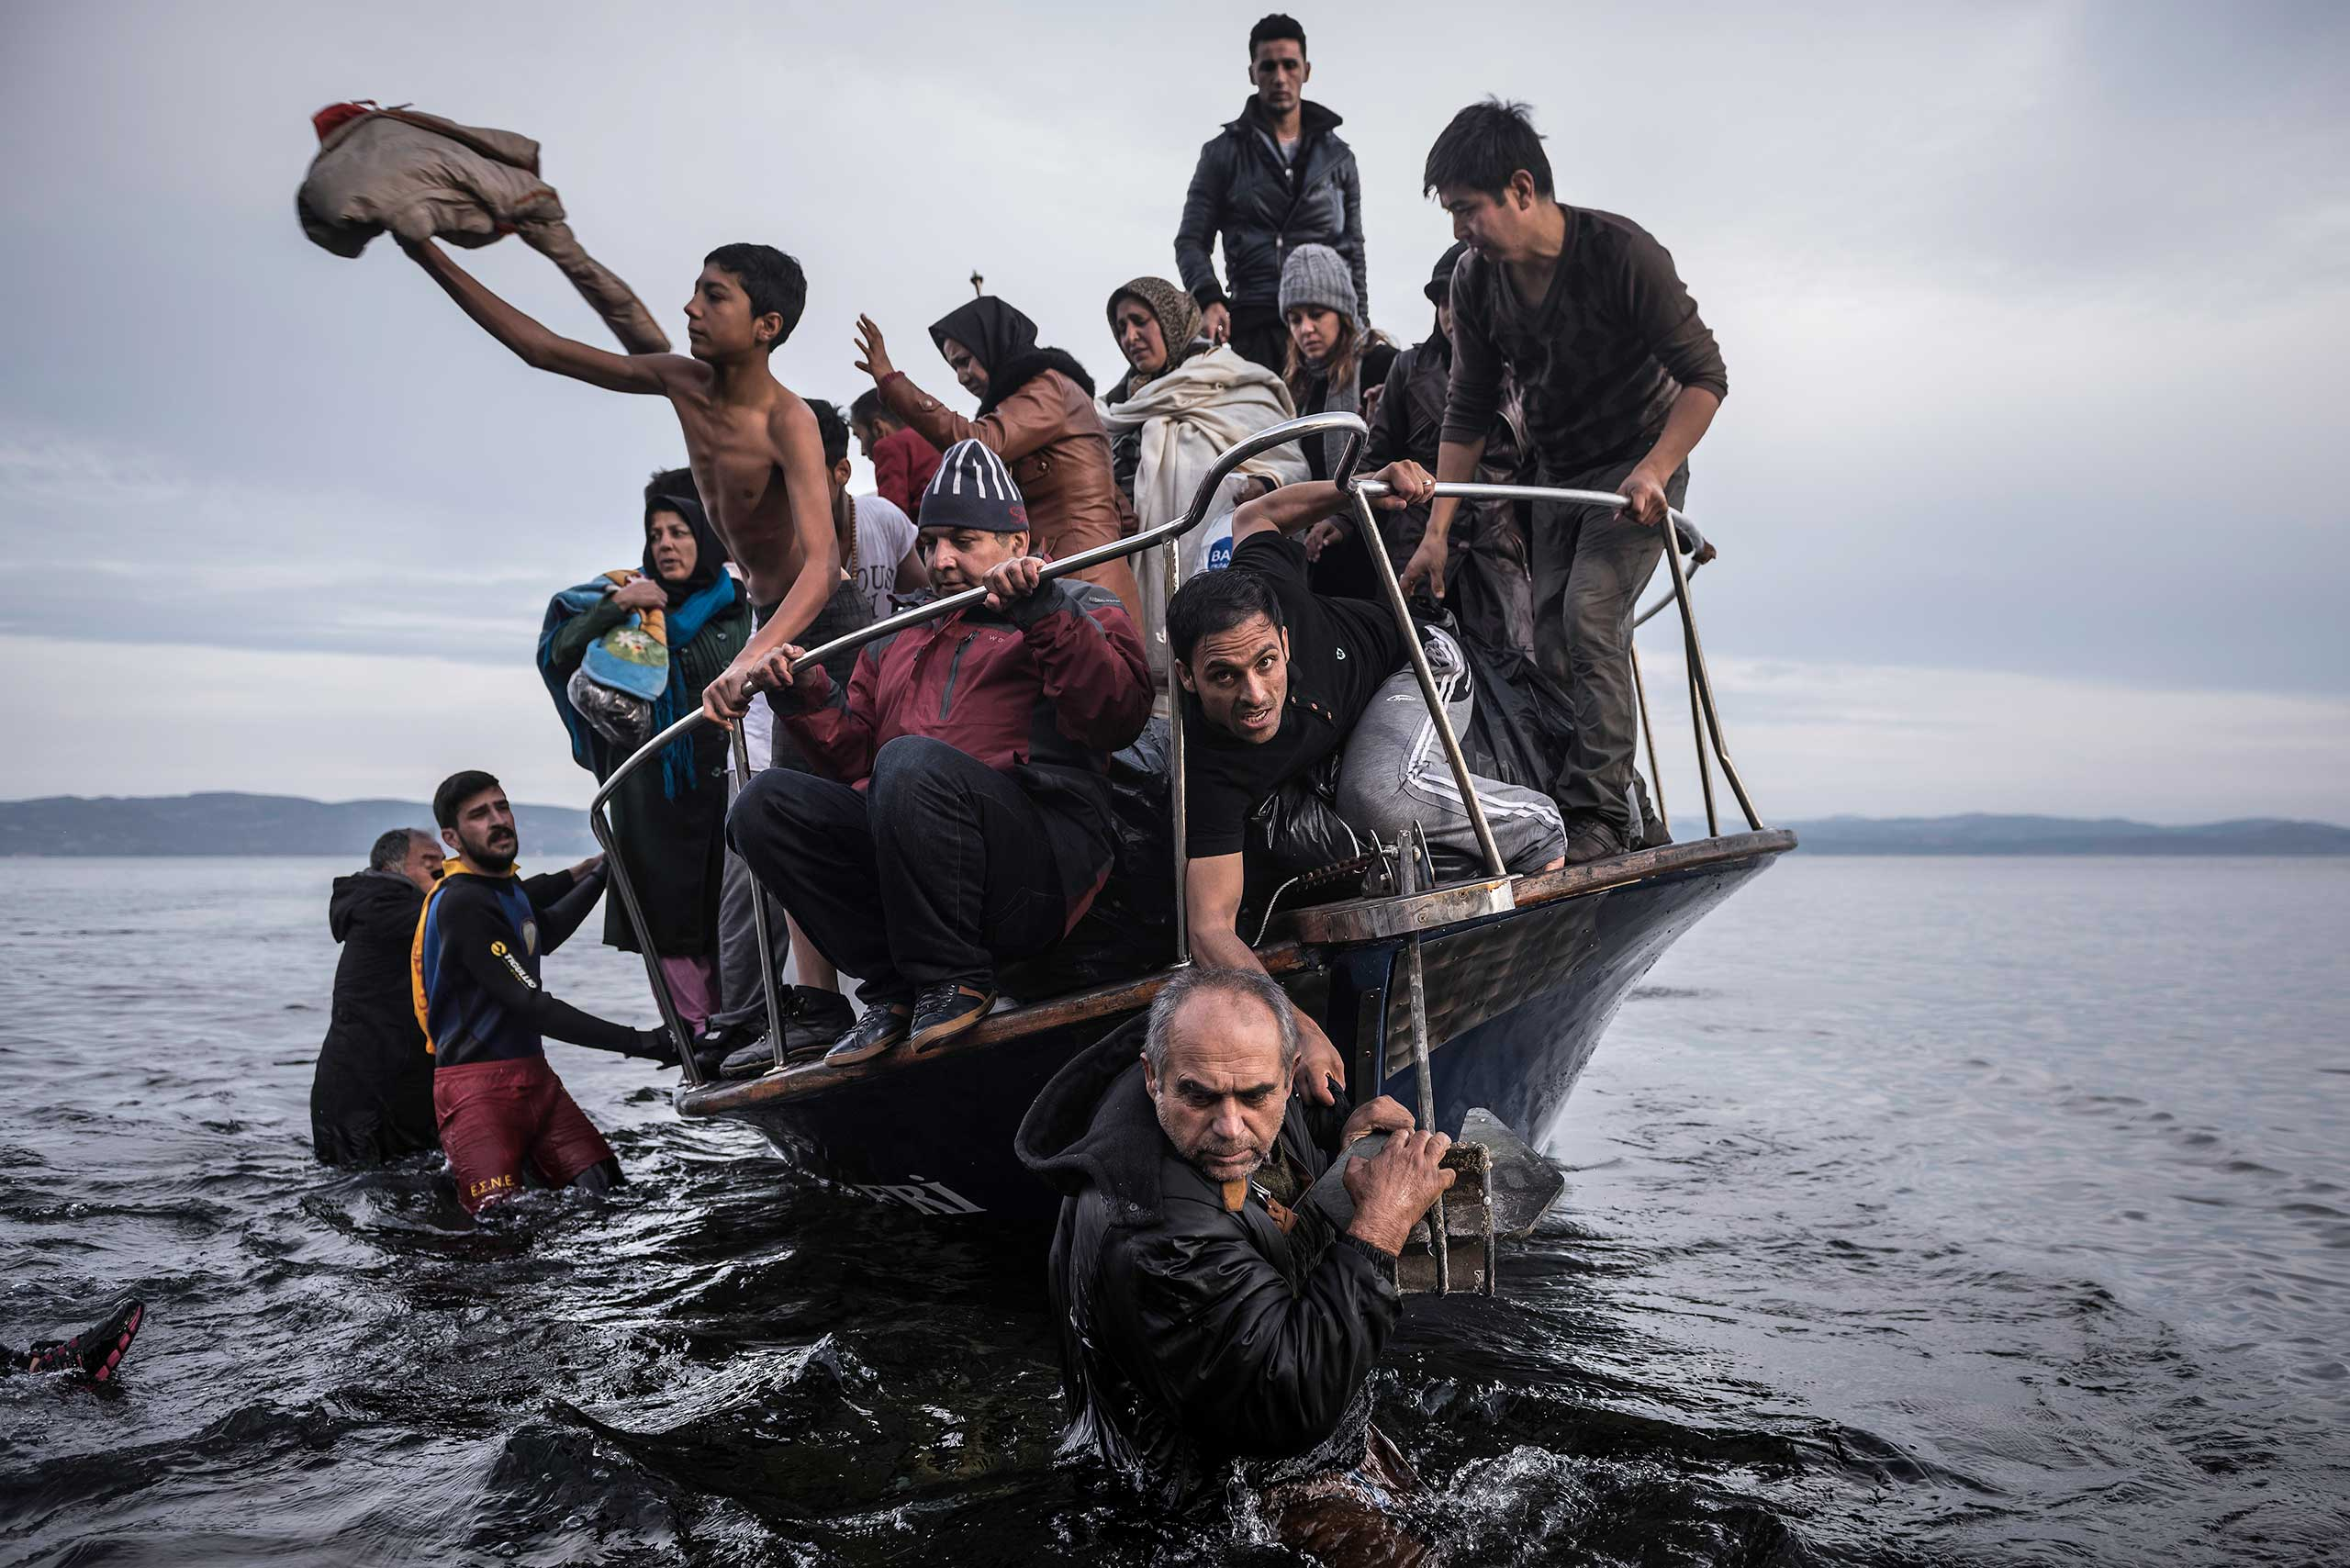 Migrants arrive by a Turkish boat near the village of Skala, on the Greek island of Lesbos. The Turkish boat owner delivered some 150 people to the Greek coast and tried to escape back to Turkey; he was arrested in Turkish waters.                                Series: Europe Migration Crisis. November 16, 2015.